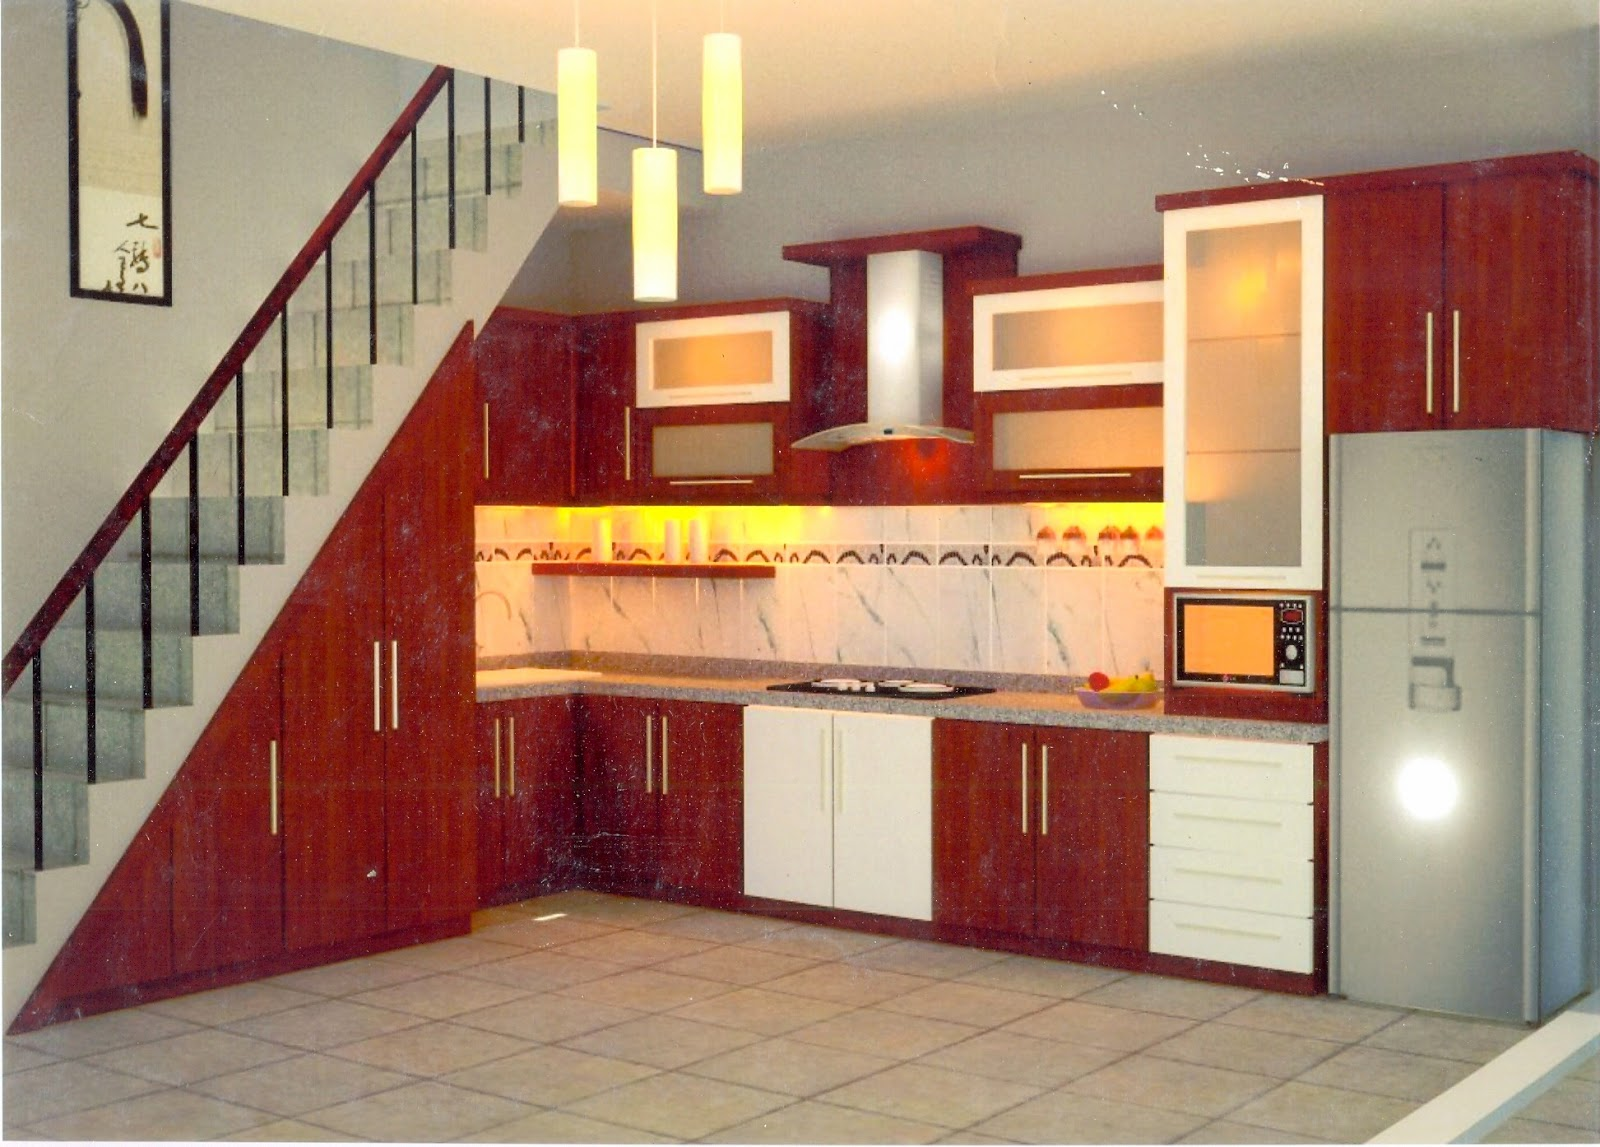 kitchenset minimalis 02191859129